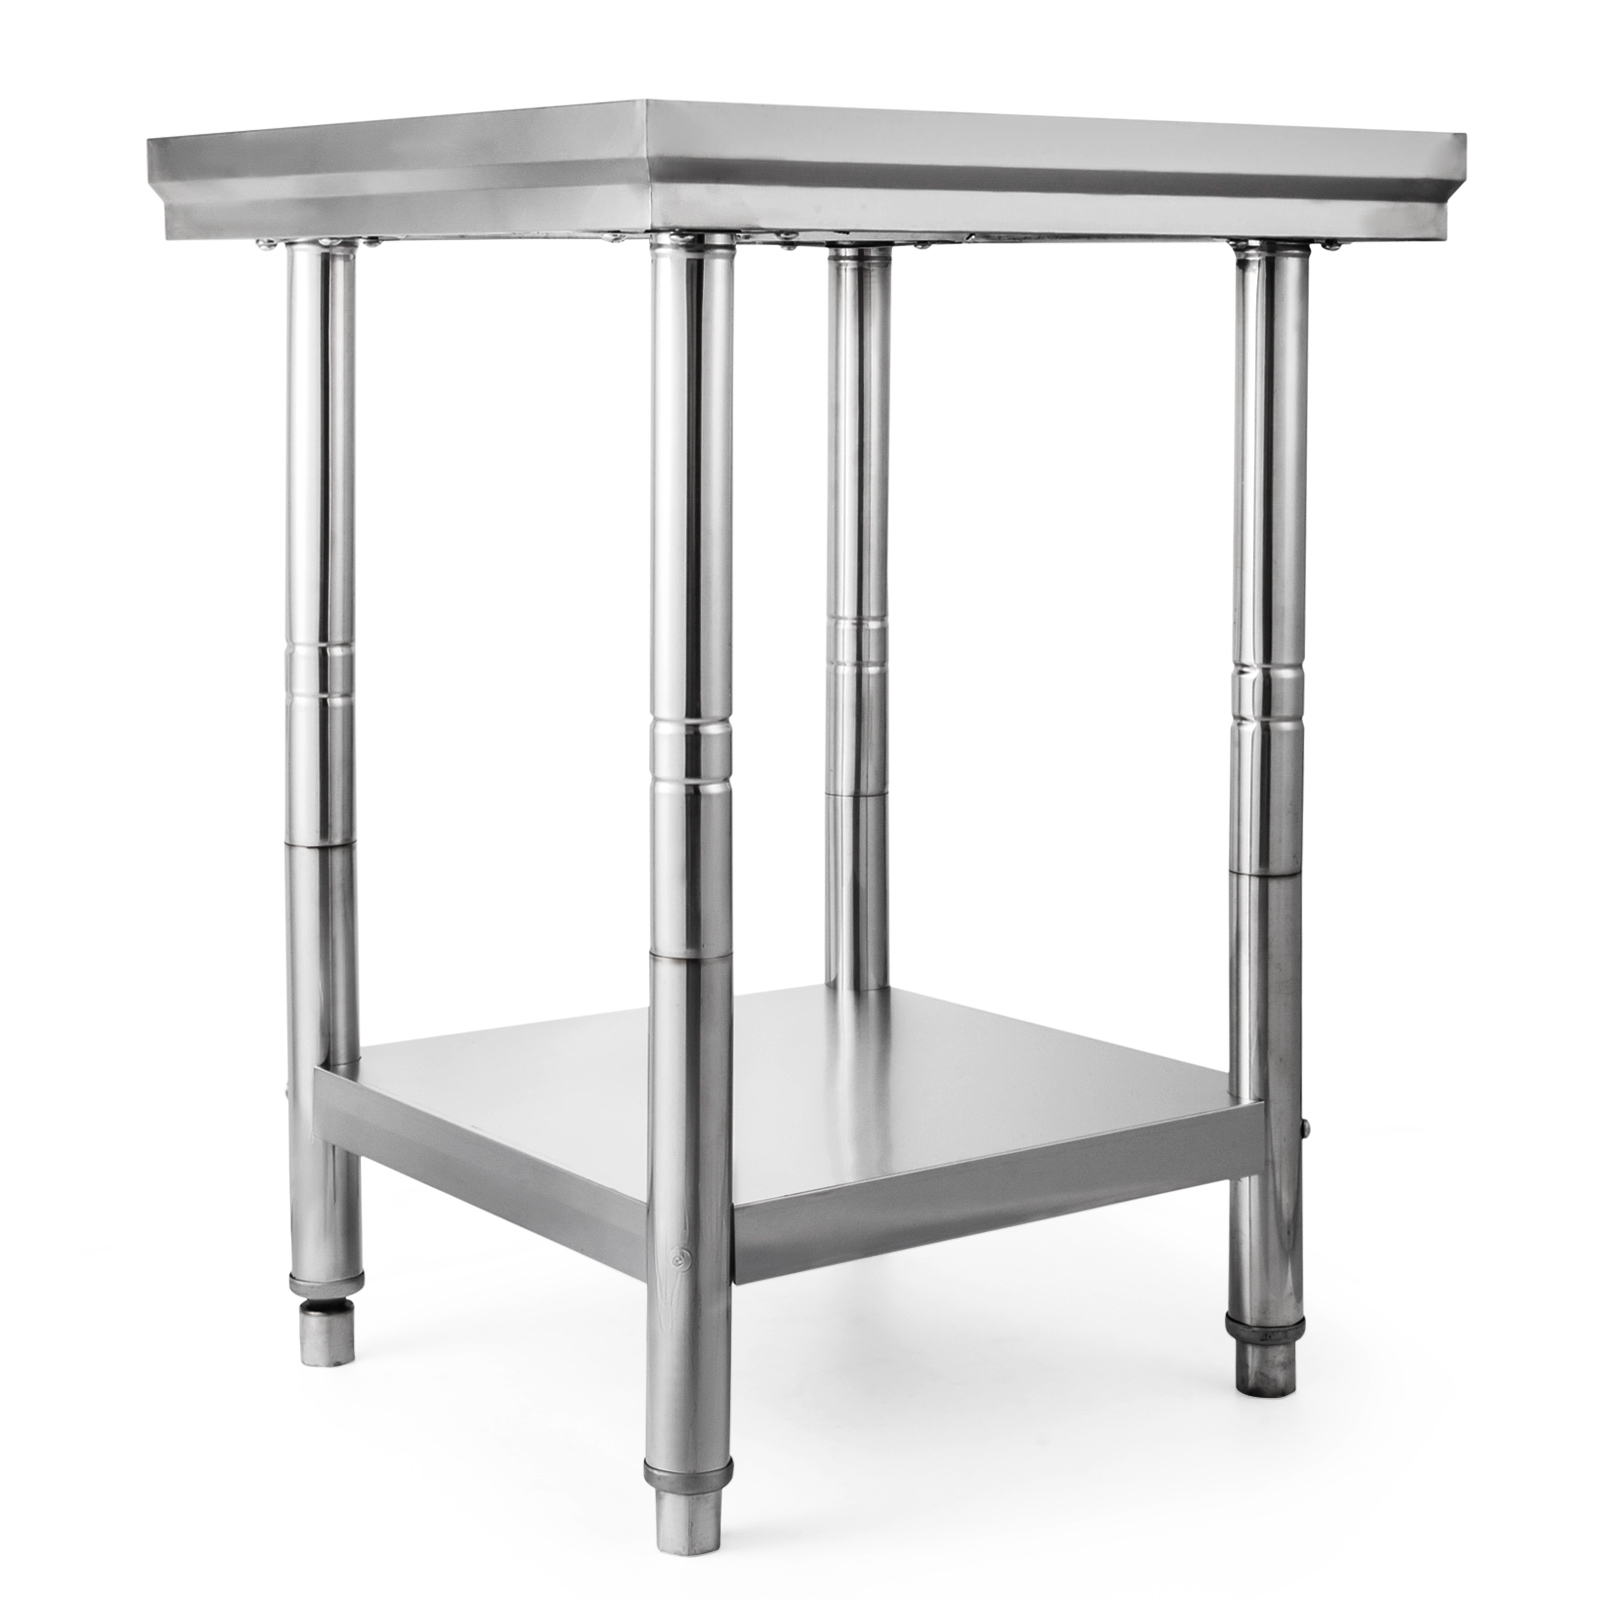 Stainless Steel Kitchen Benches: Commercial Stainless Steel Work Bench Kitchen Catering